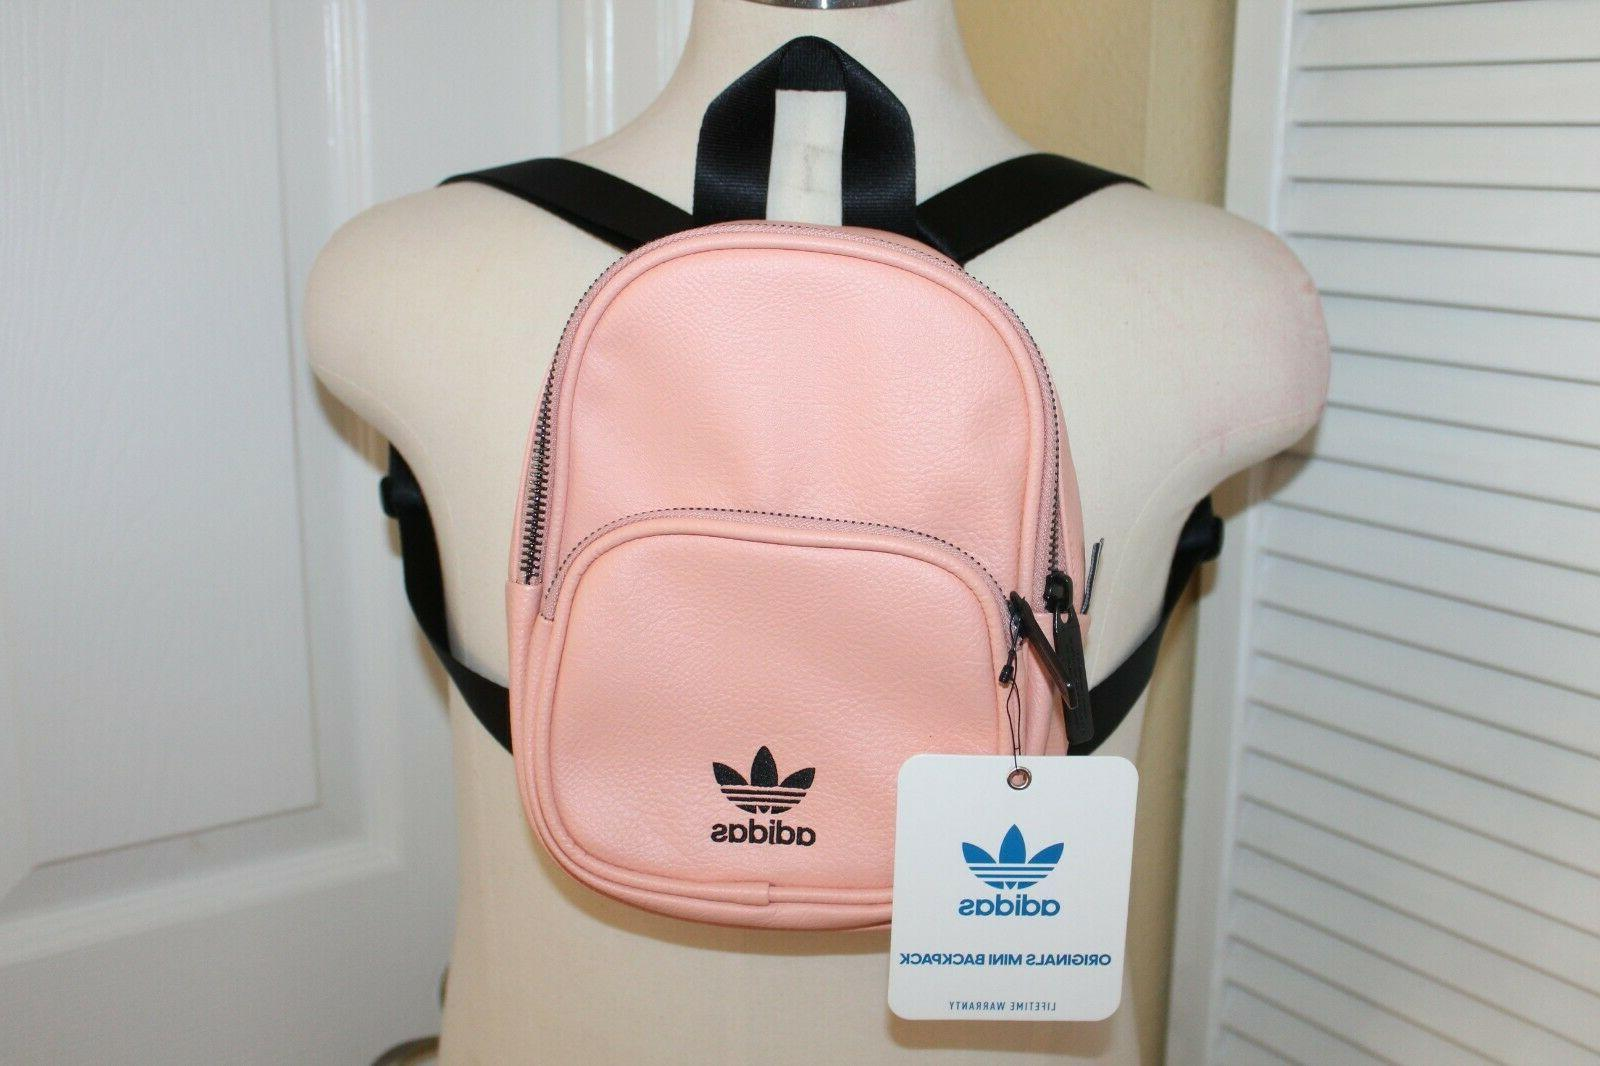 adidas Mini PU Leather One